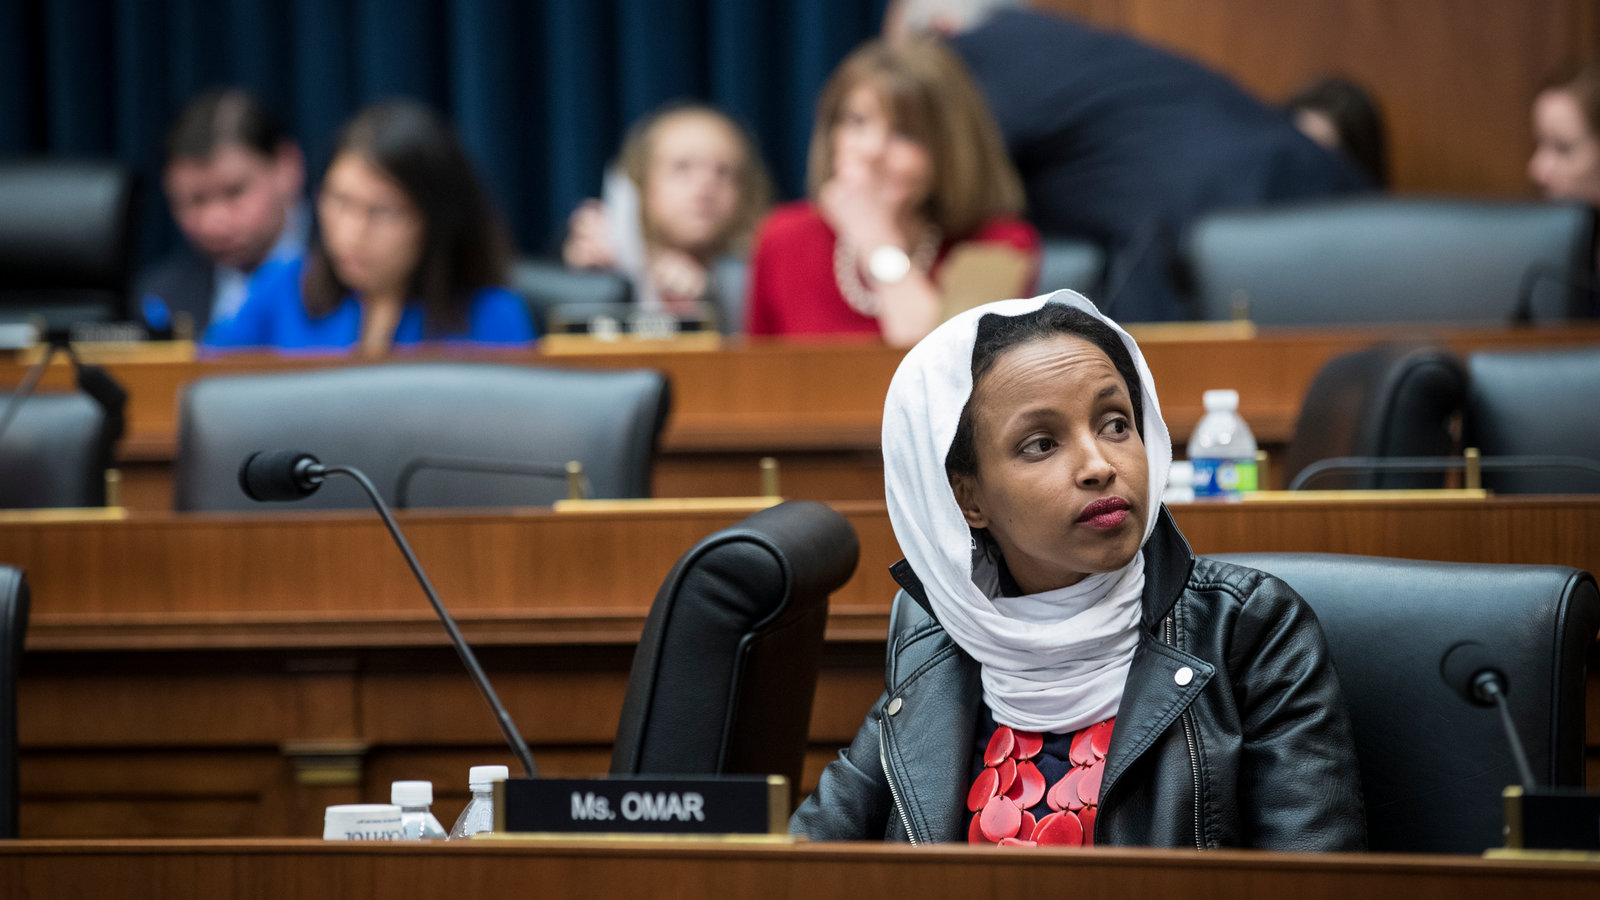 ilhan omar twitter 911 videos news today